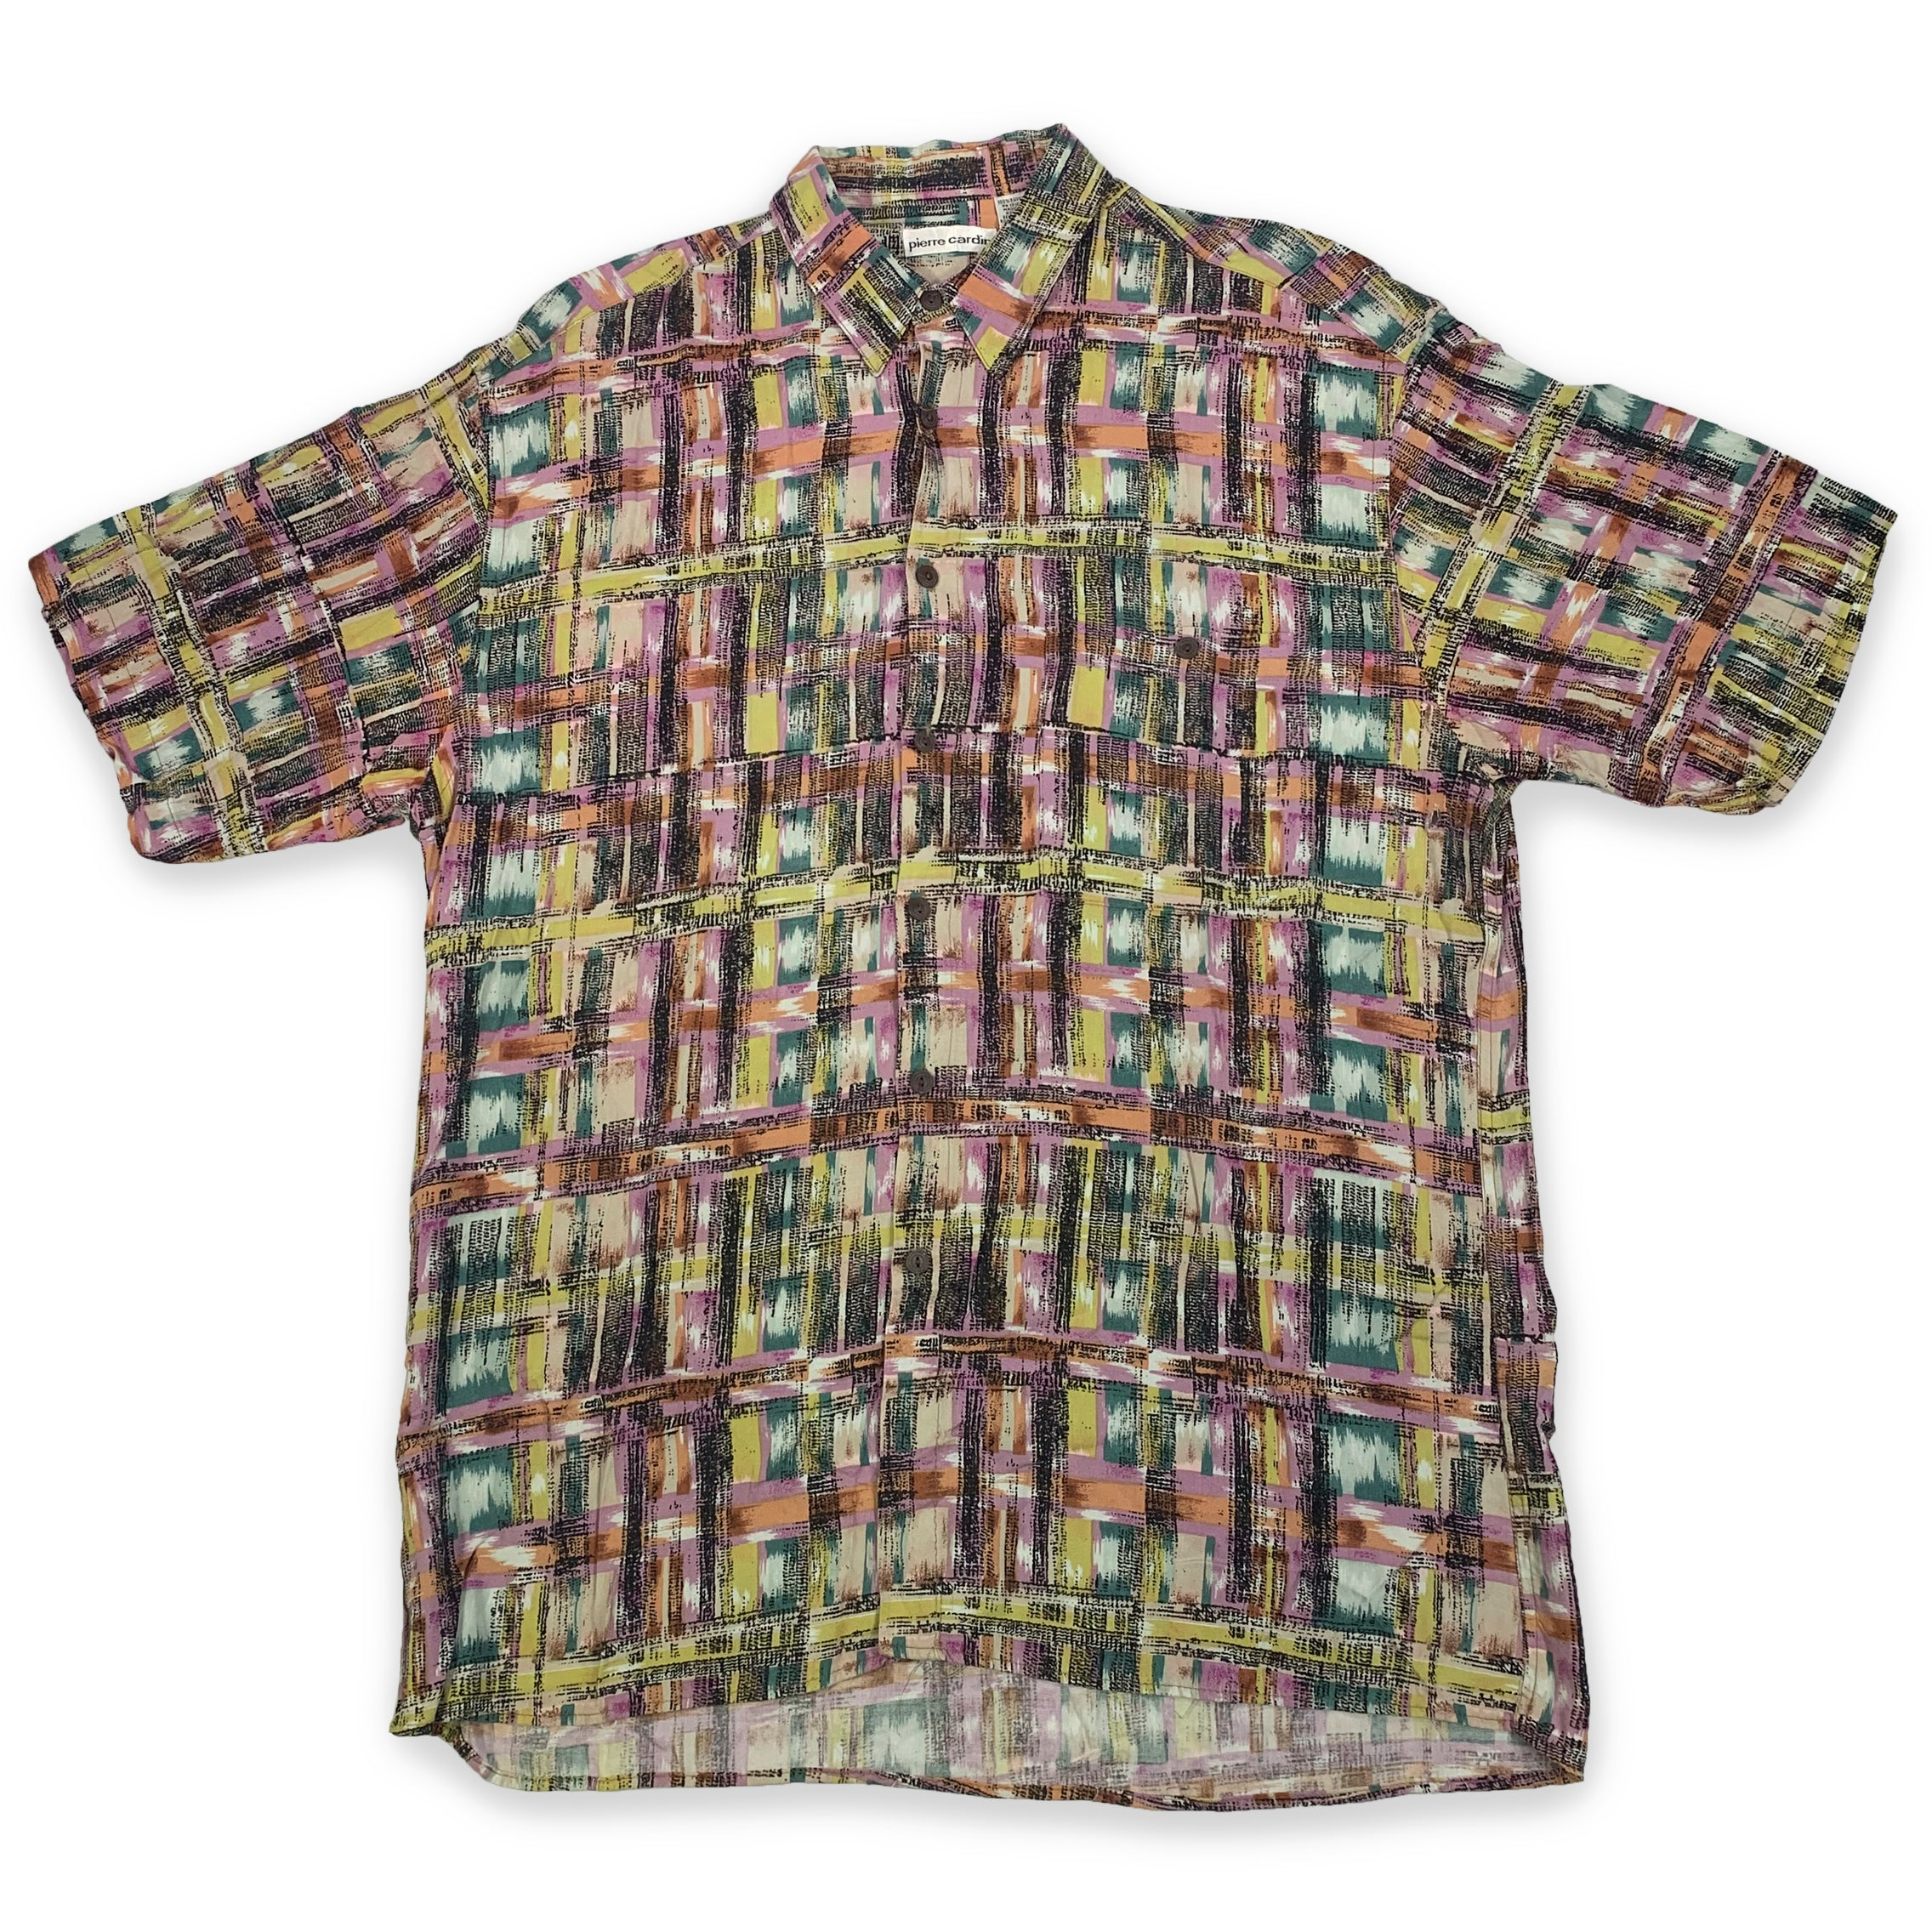 90s Pierre Cardin Multicolor Short Sleeve Button Up Shirt